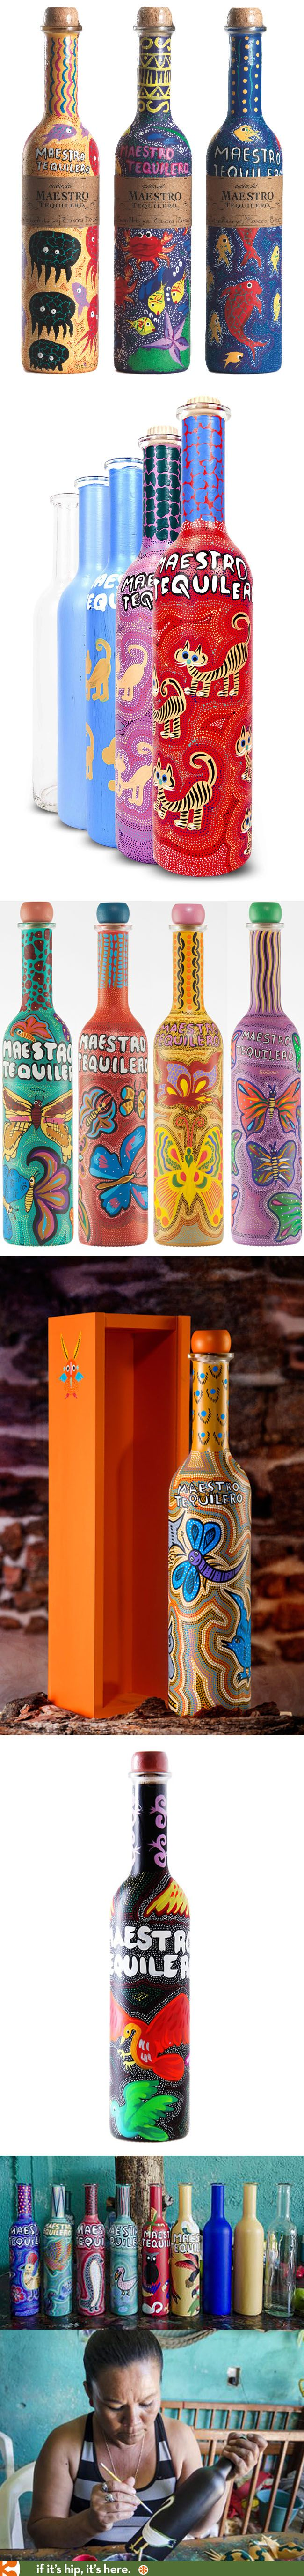 """Each year since 2010, Maestro Tequilero has offered a limited collection, """"Atelier Maestro"""", of themed bottles hand painted by Oaxacan Artists. Here are the Birds, Butterflies, Animals and Sea Creatures PD"""